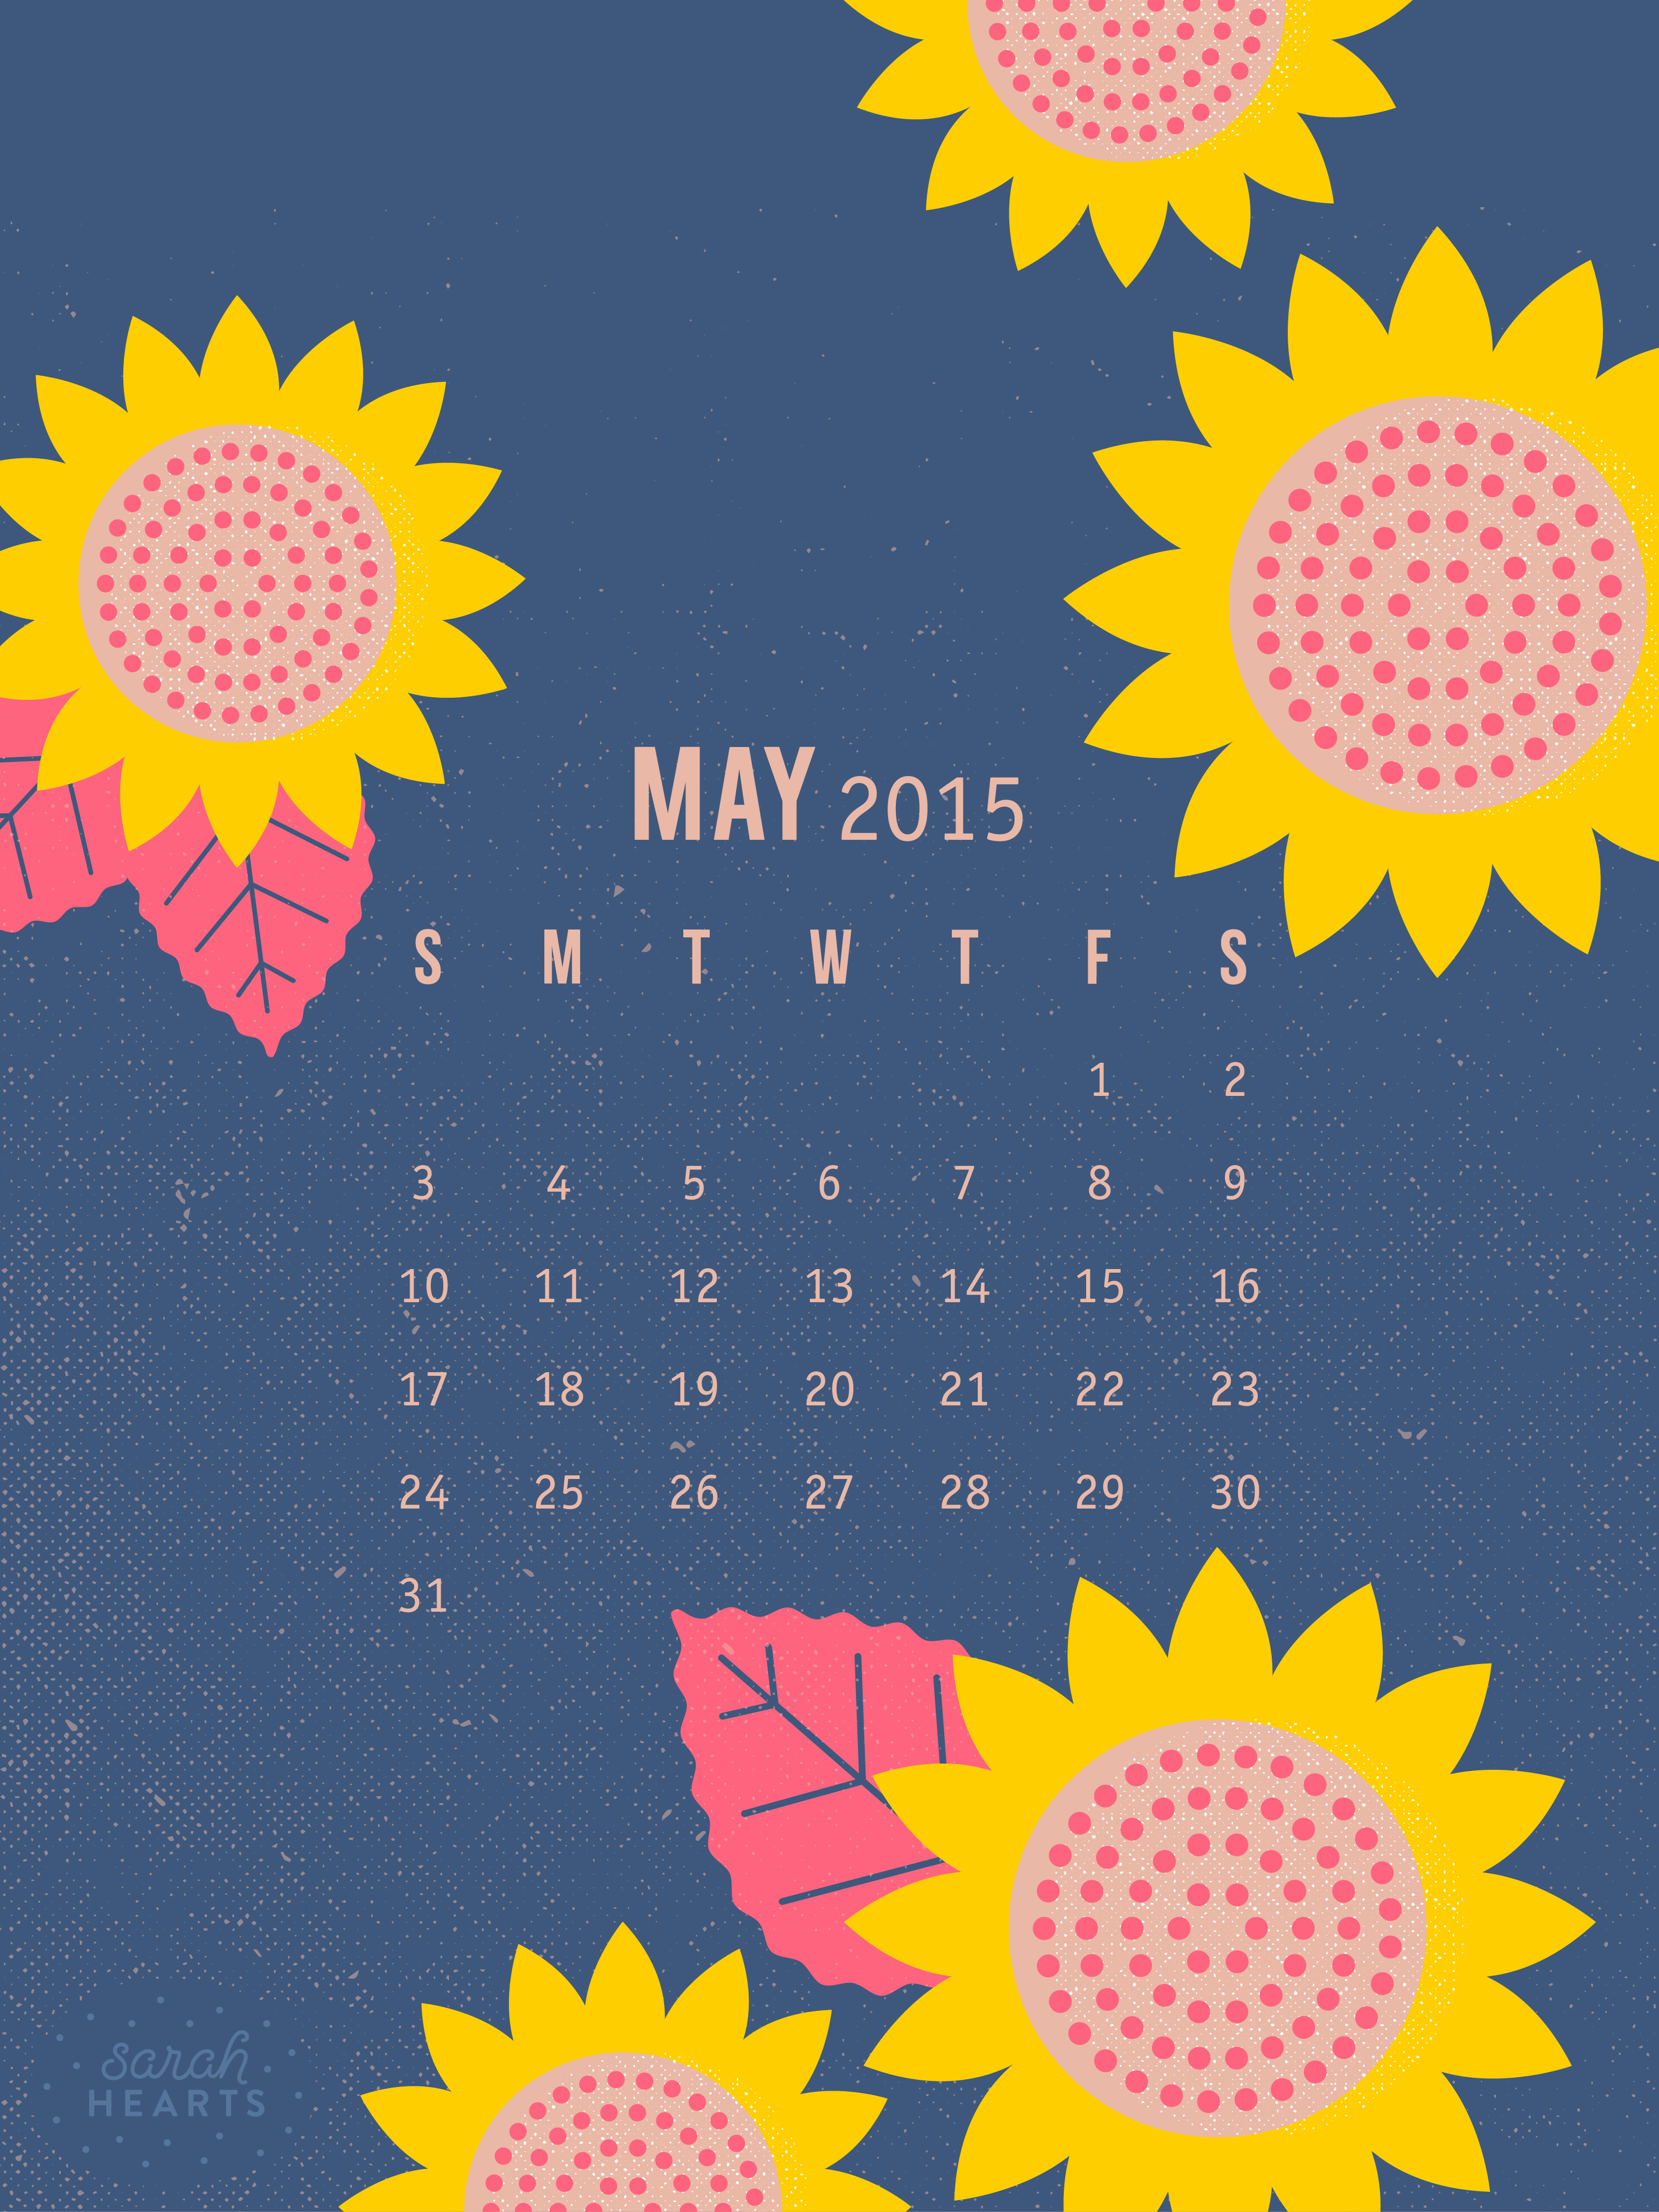 Calendar Wallpaper May : May calendar wallpaper sarah hearts